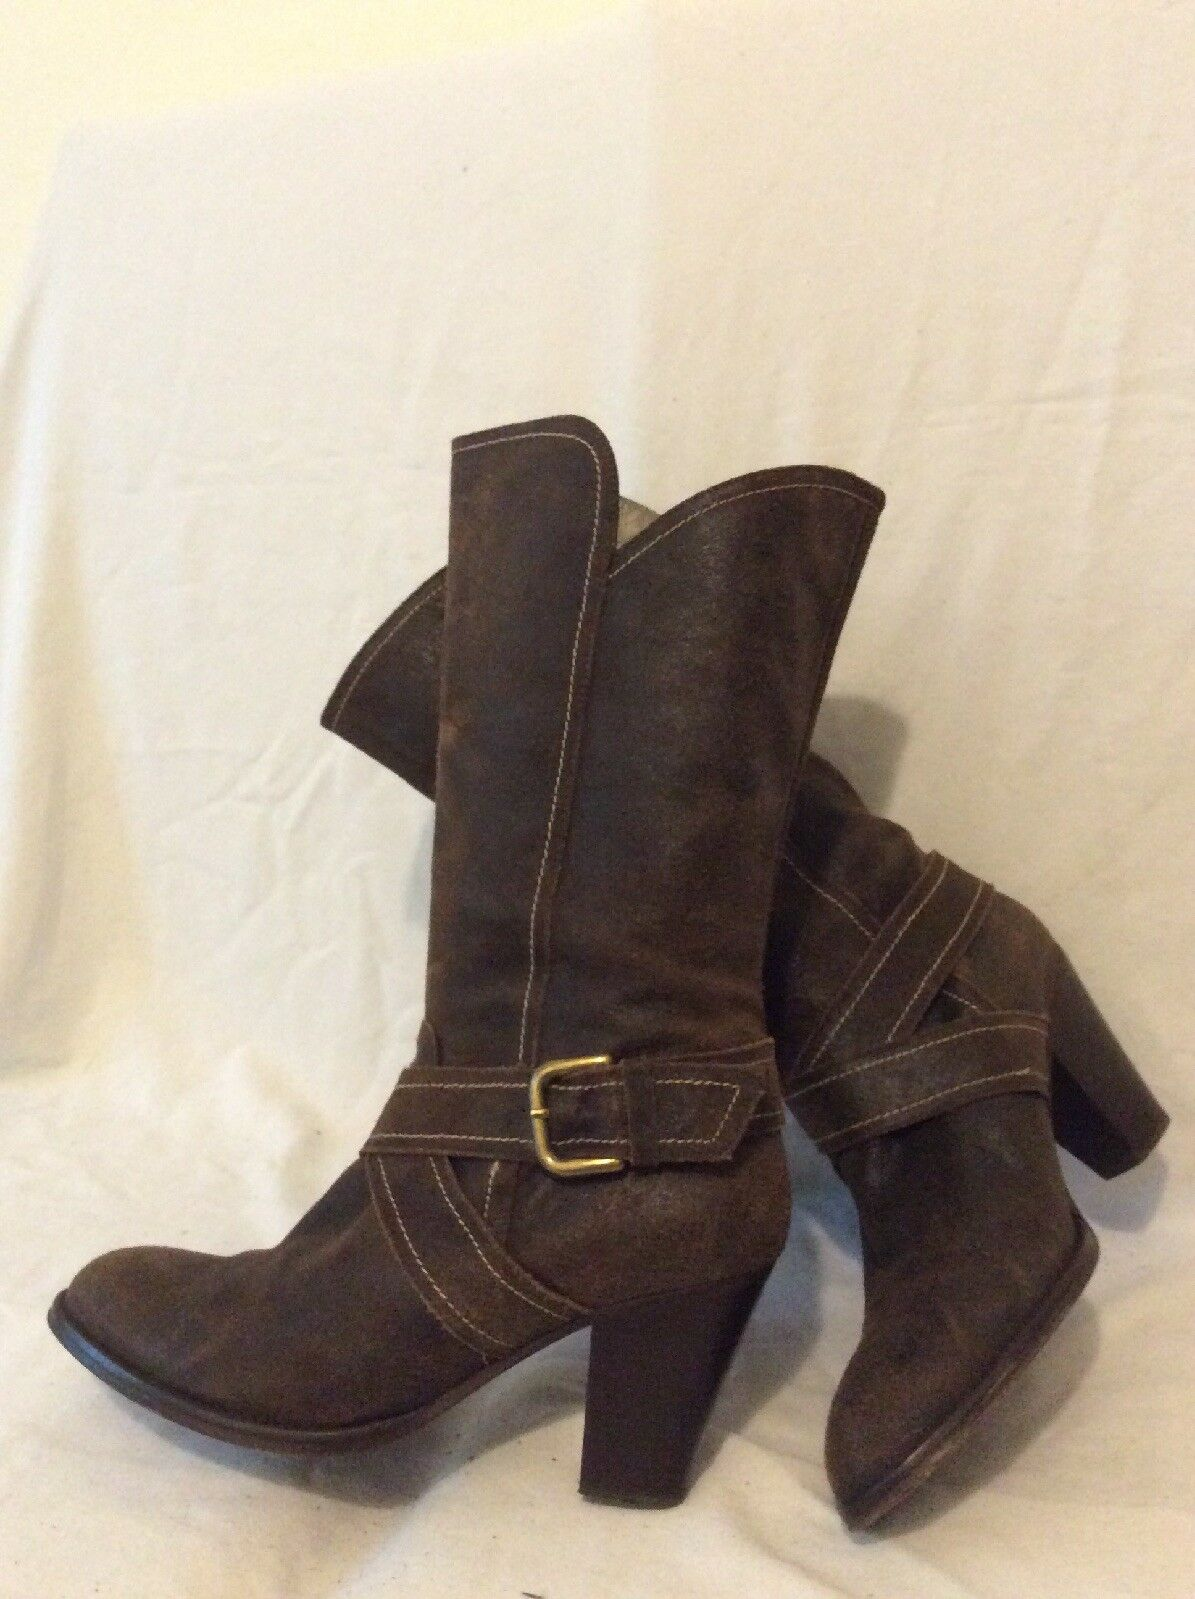 Stilltield Dark Brown Mid Calf Leather Boots Size 40